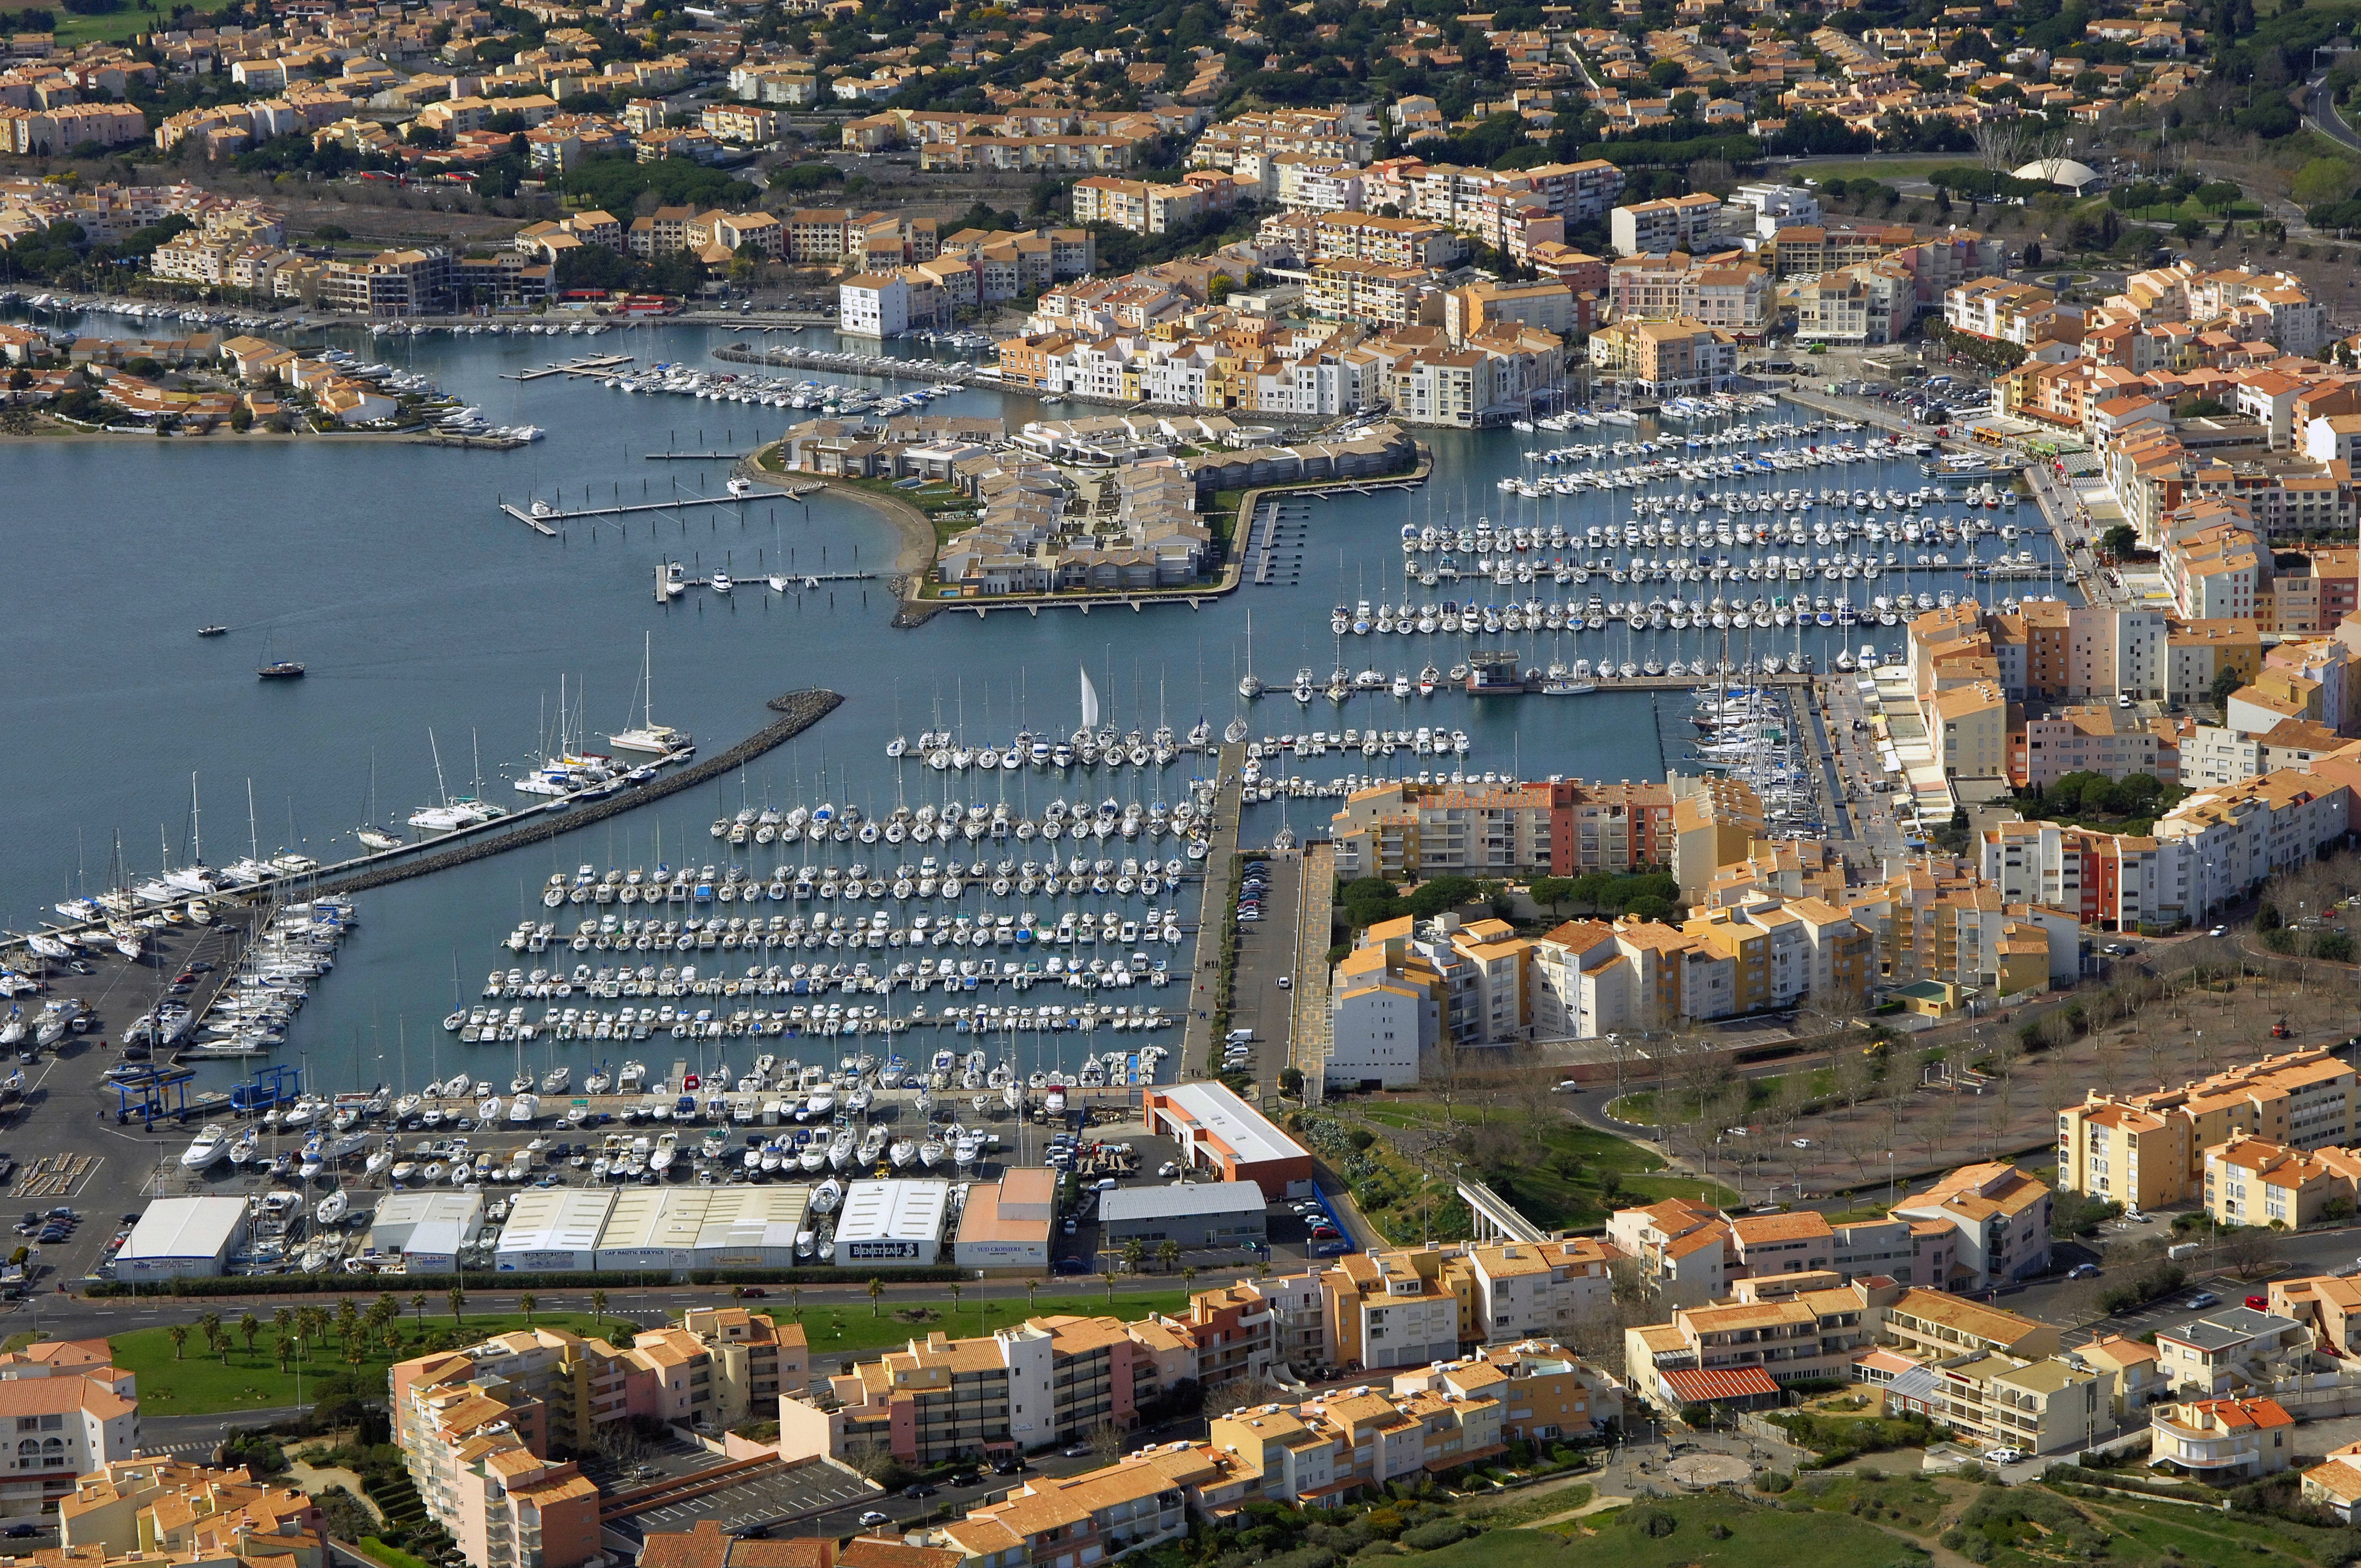 Pictures cap d agde Going as